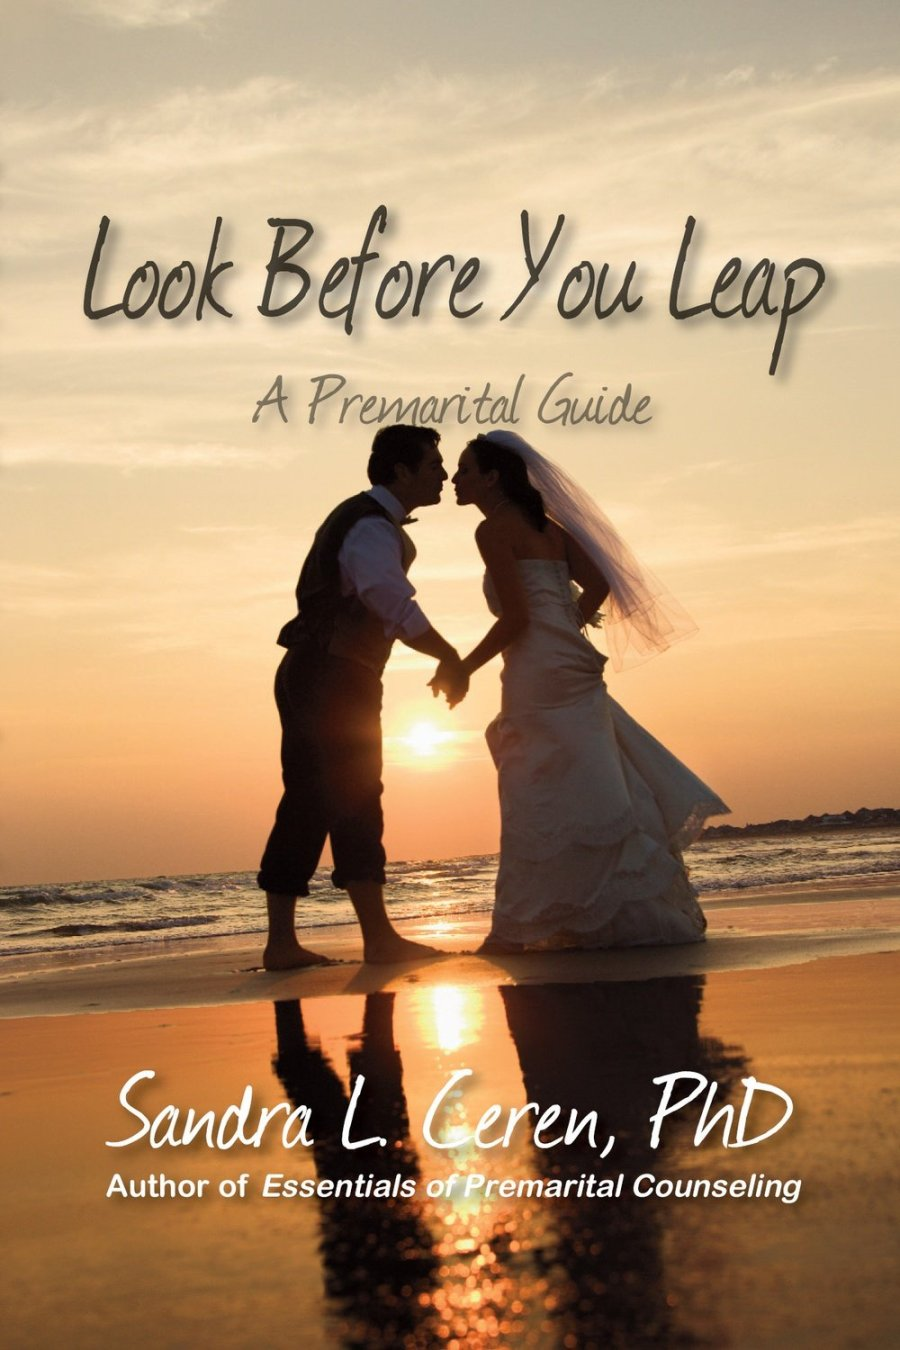 Look Before You Leap: A Premarital Guide for Couples